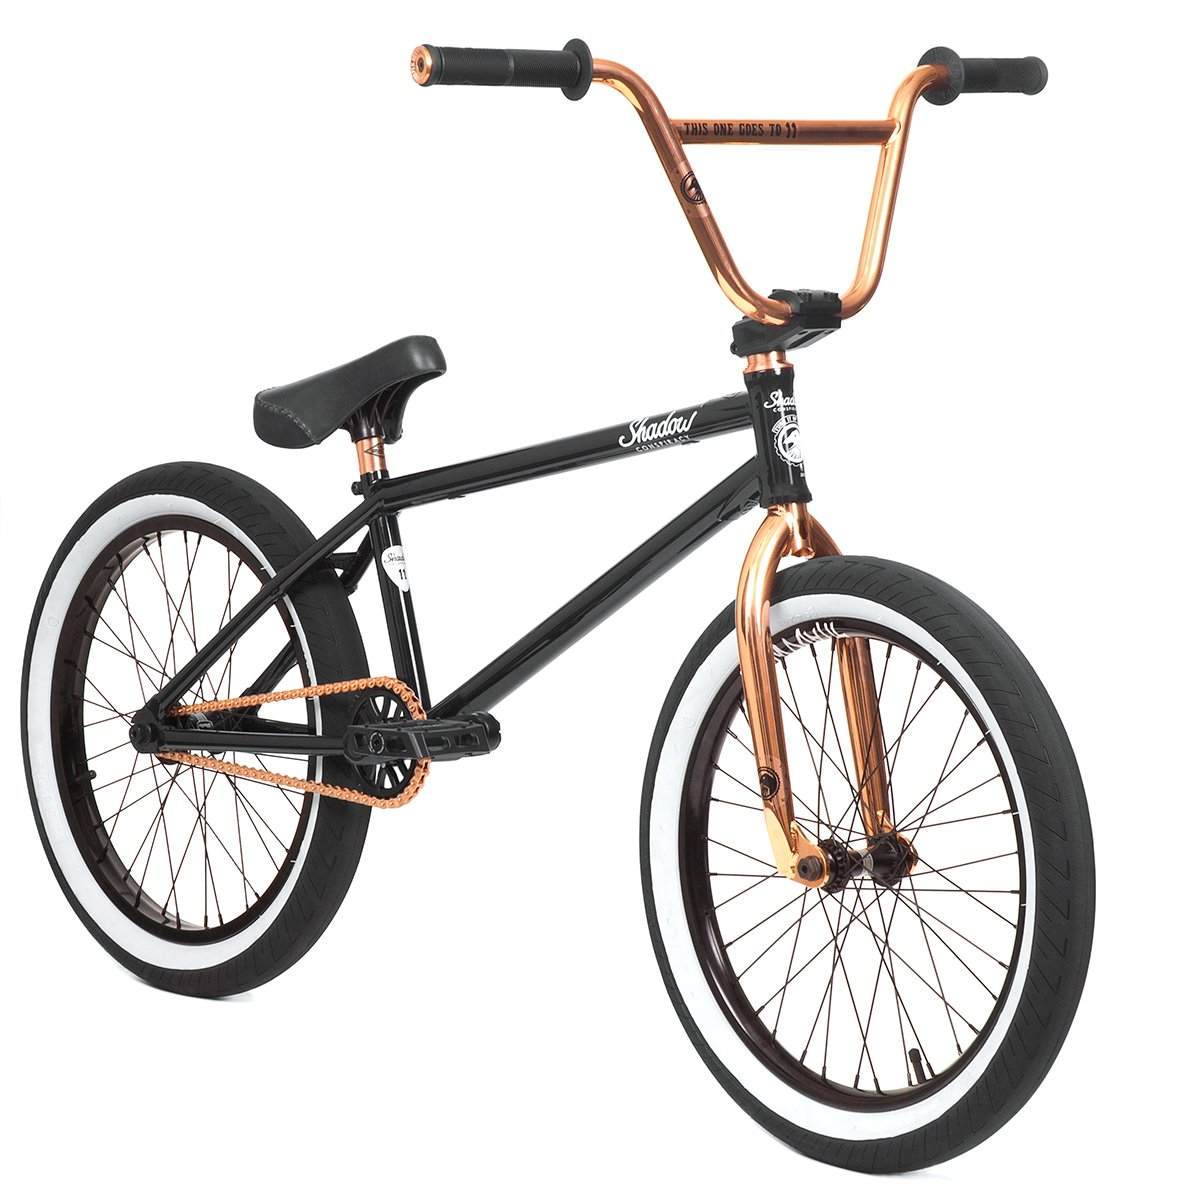 SHADOW X SUBROSA TURN IT TO 11 BIKE - The Shadow Conspiracy